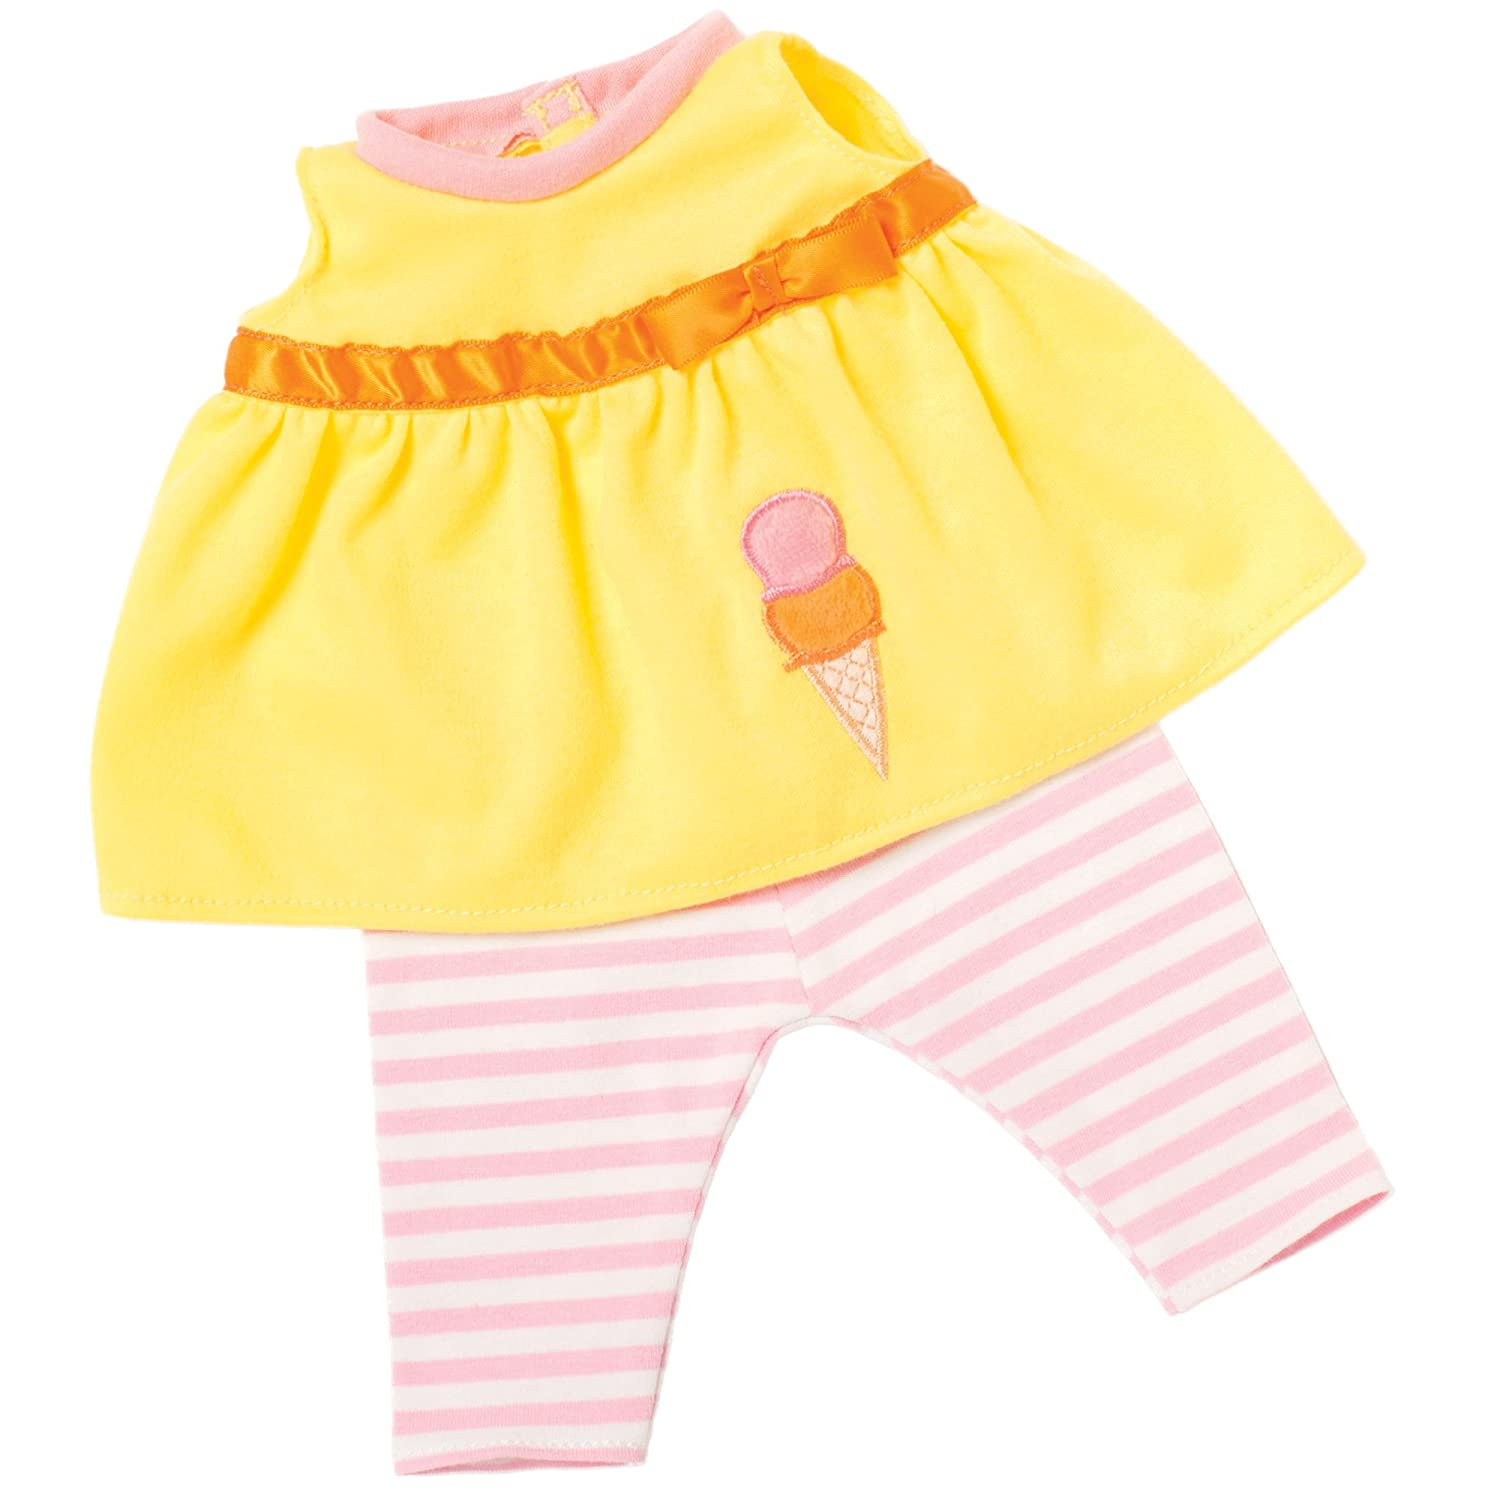 Manhattan Toy Baby Stella My Treat Baby Doll Clothes for 15' Dolls 154770